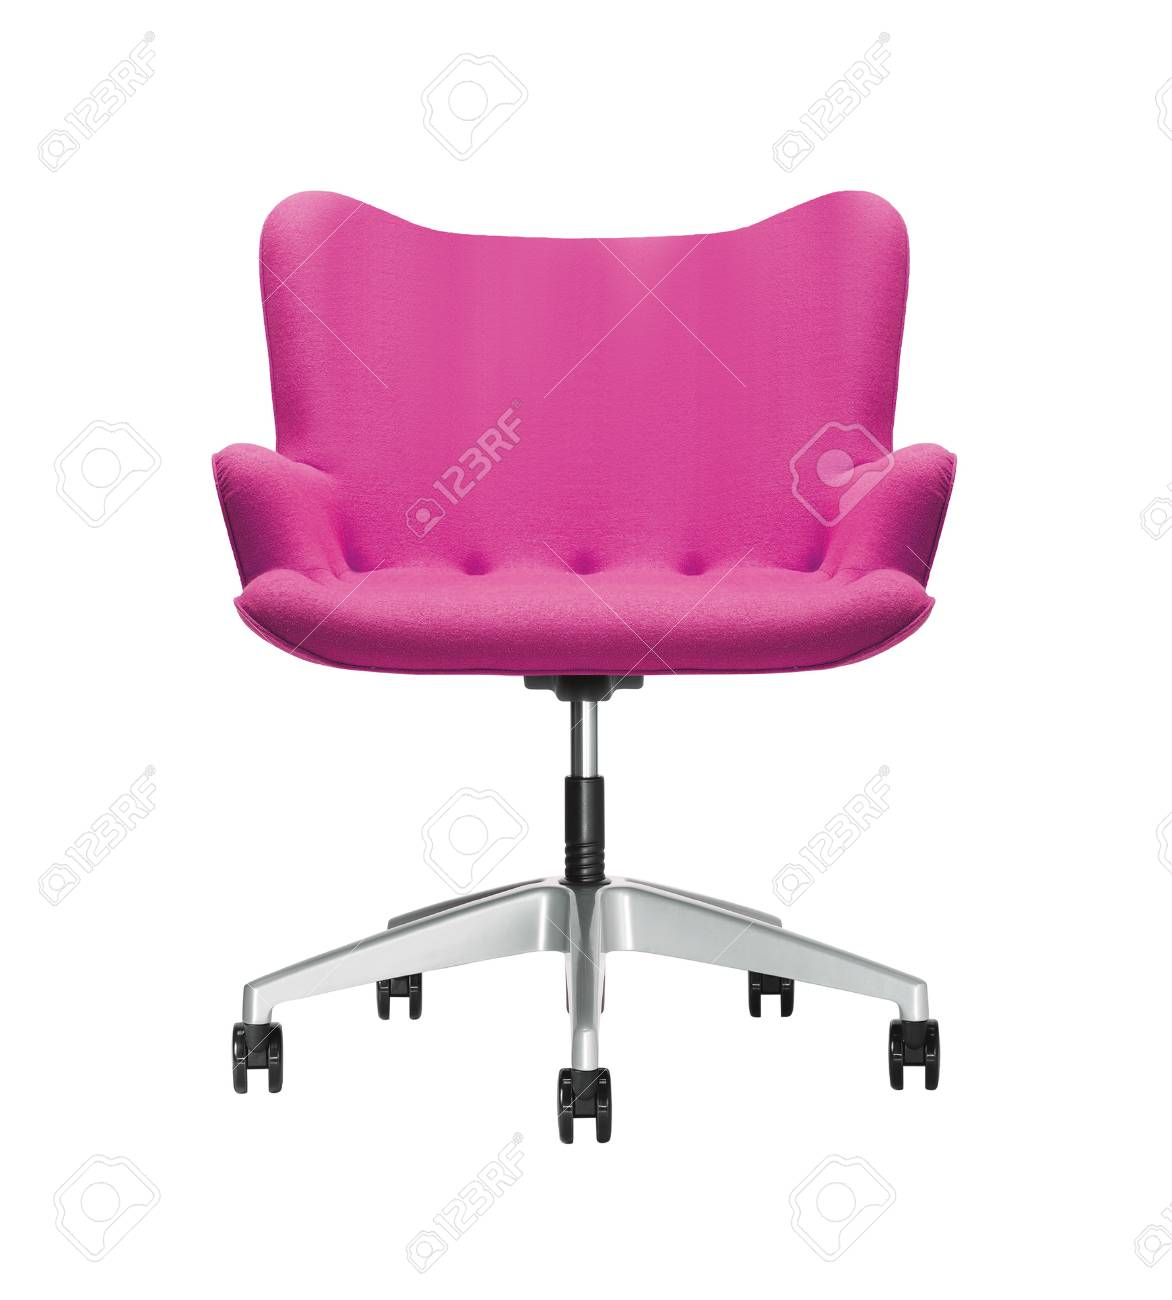 Pink Office Chairs The Office Chair From Pink Leather Isolated On White Background